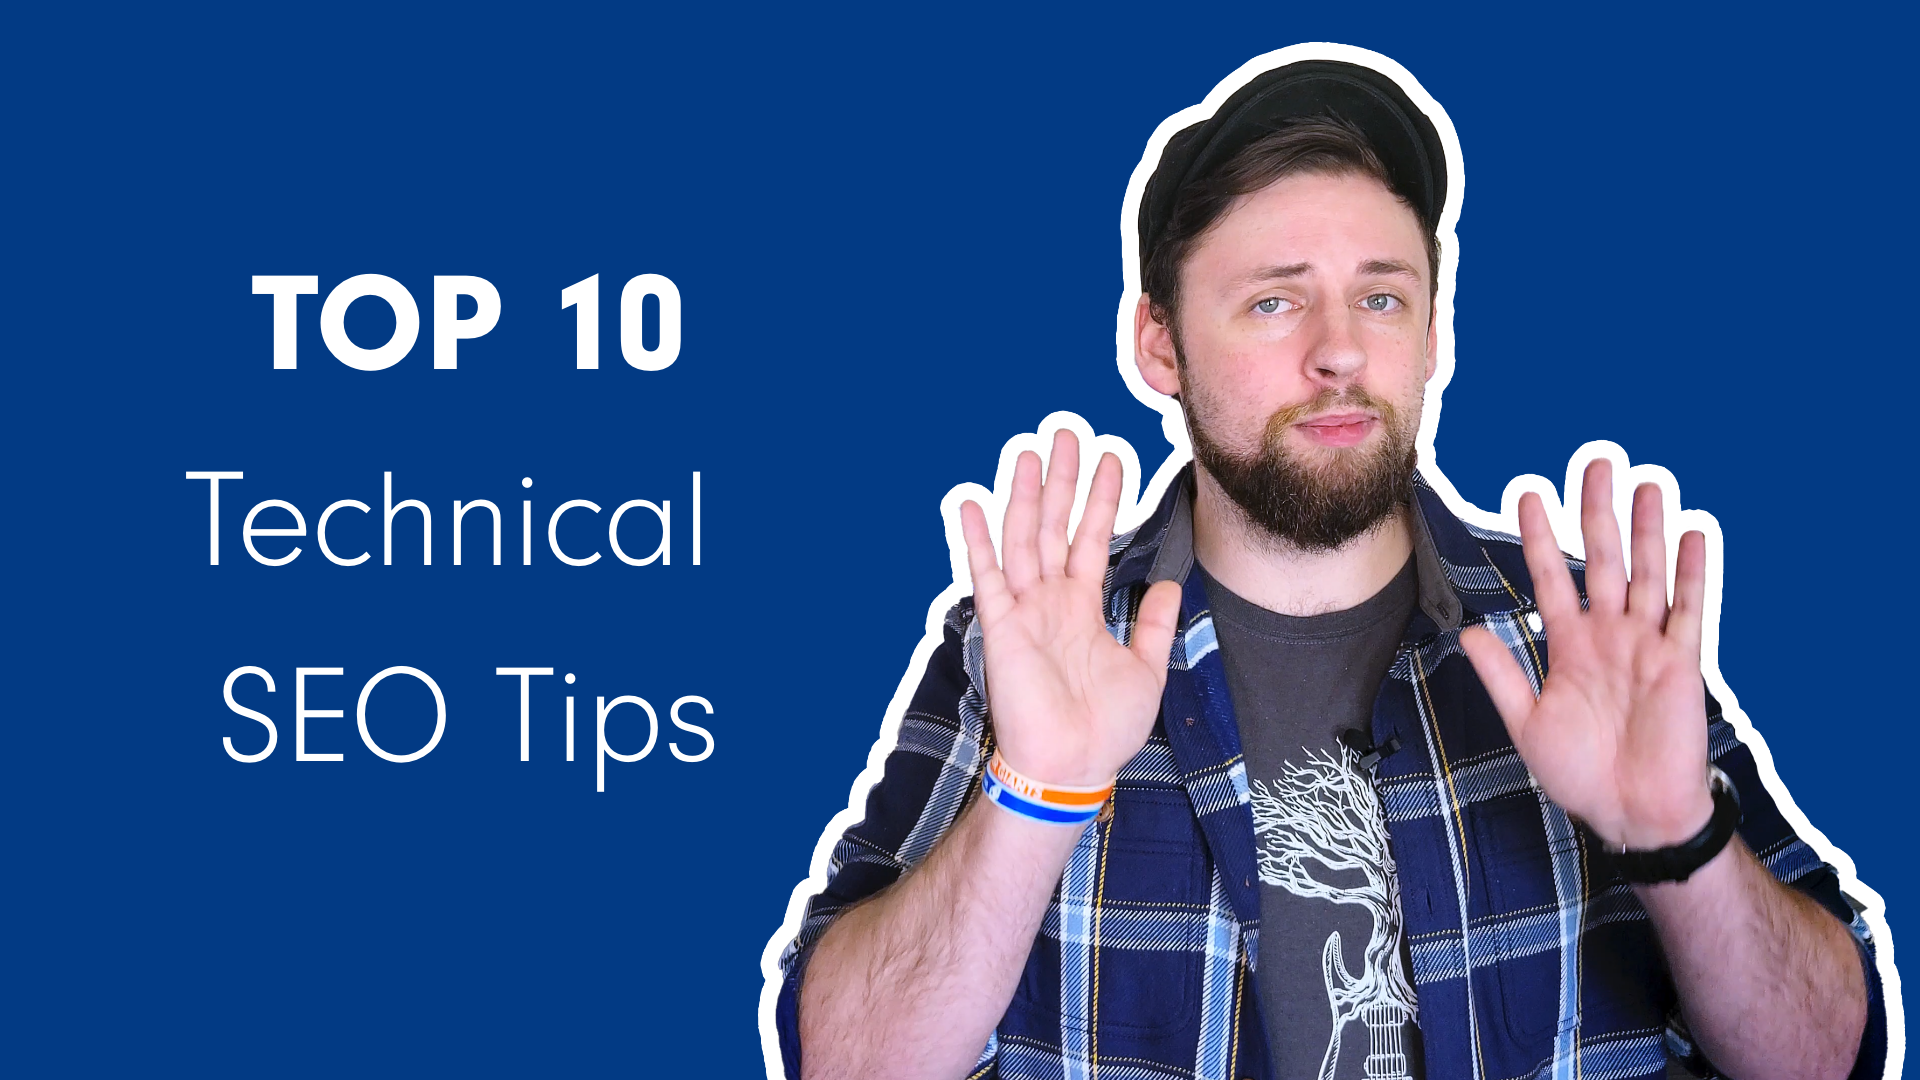 10 Technical SEO Tips for Non-Tech People